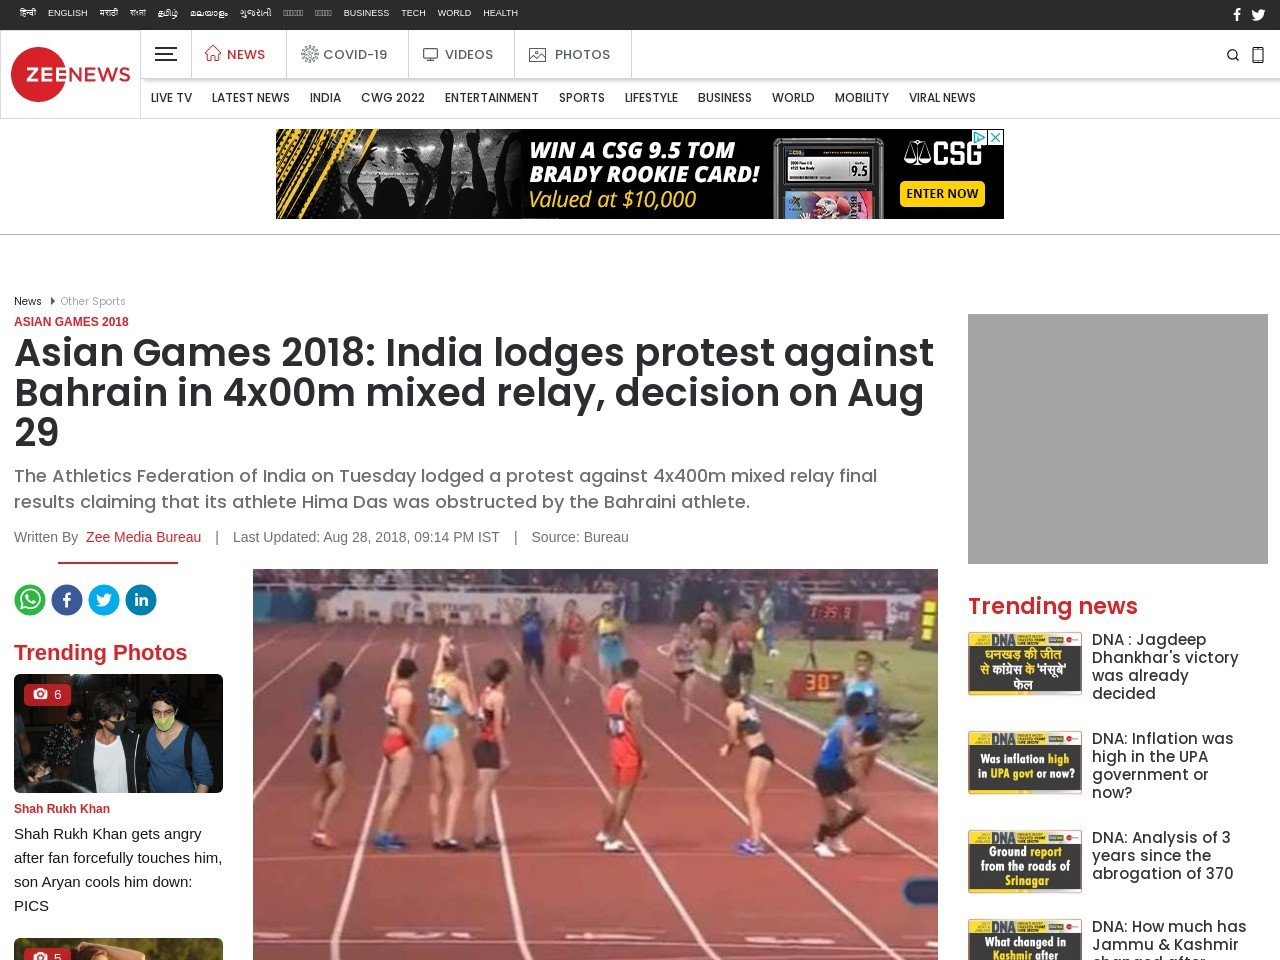 Asian Games 2018: India lodges protest against Bahrain in 4x00m mixed relay, decision on Aug 29